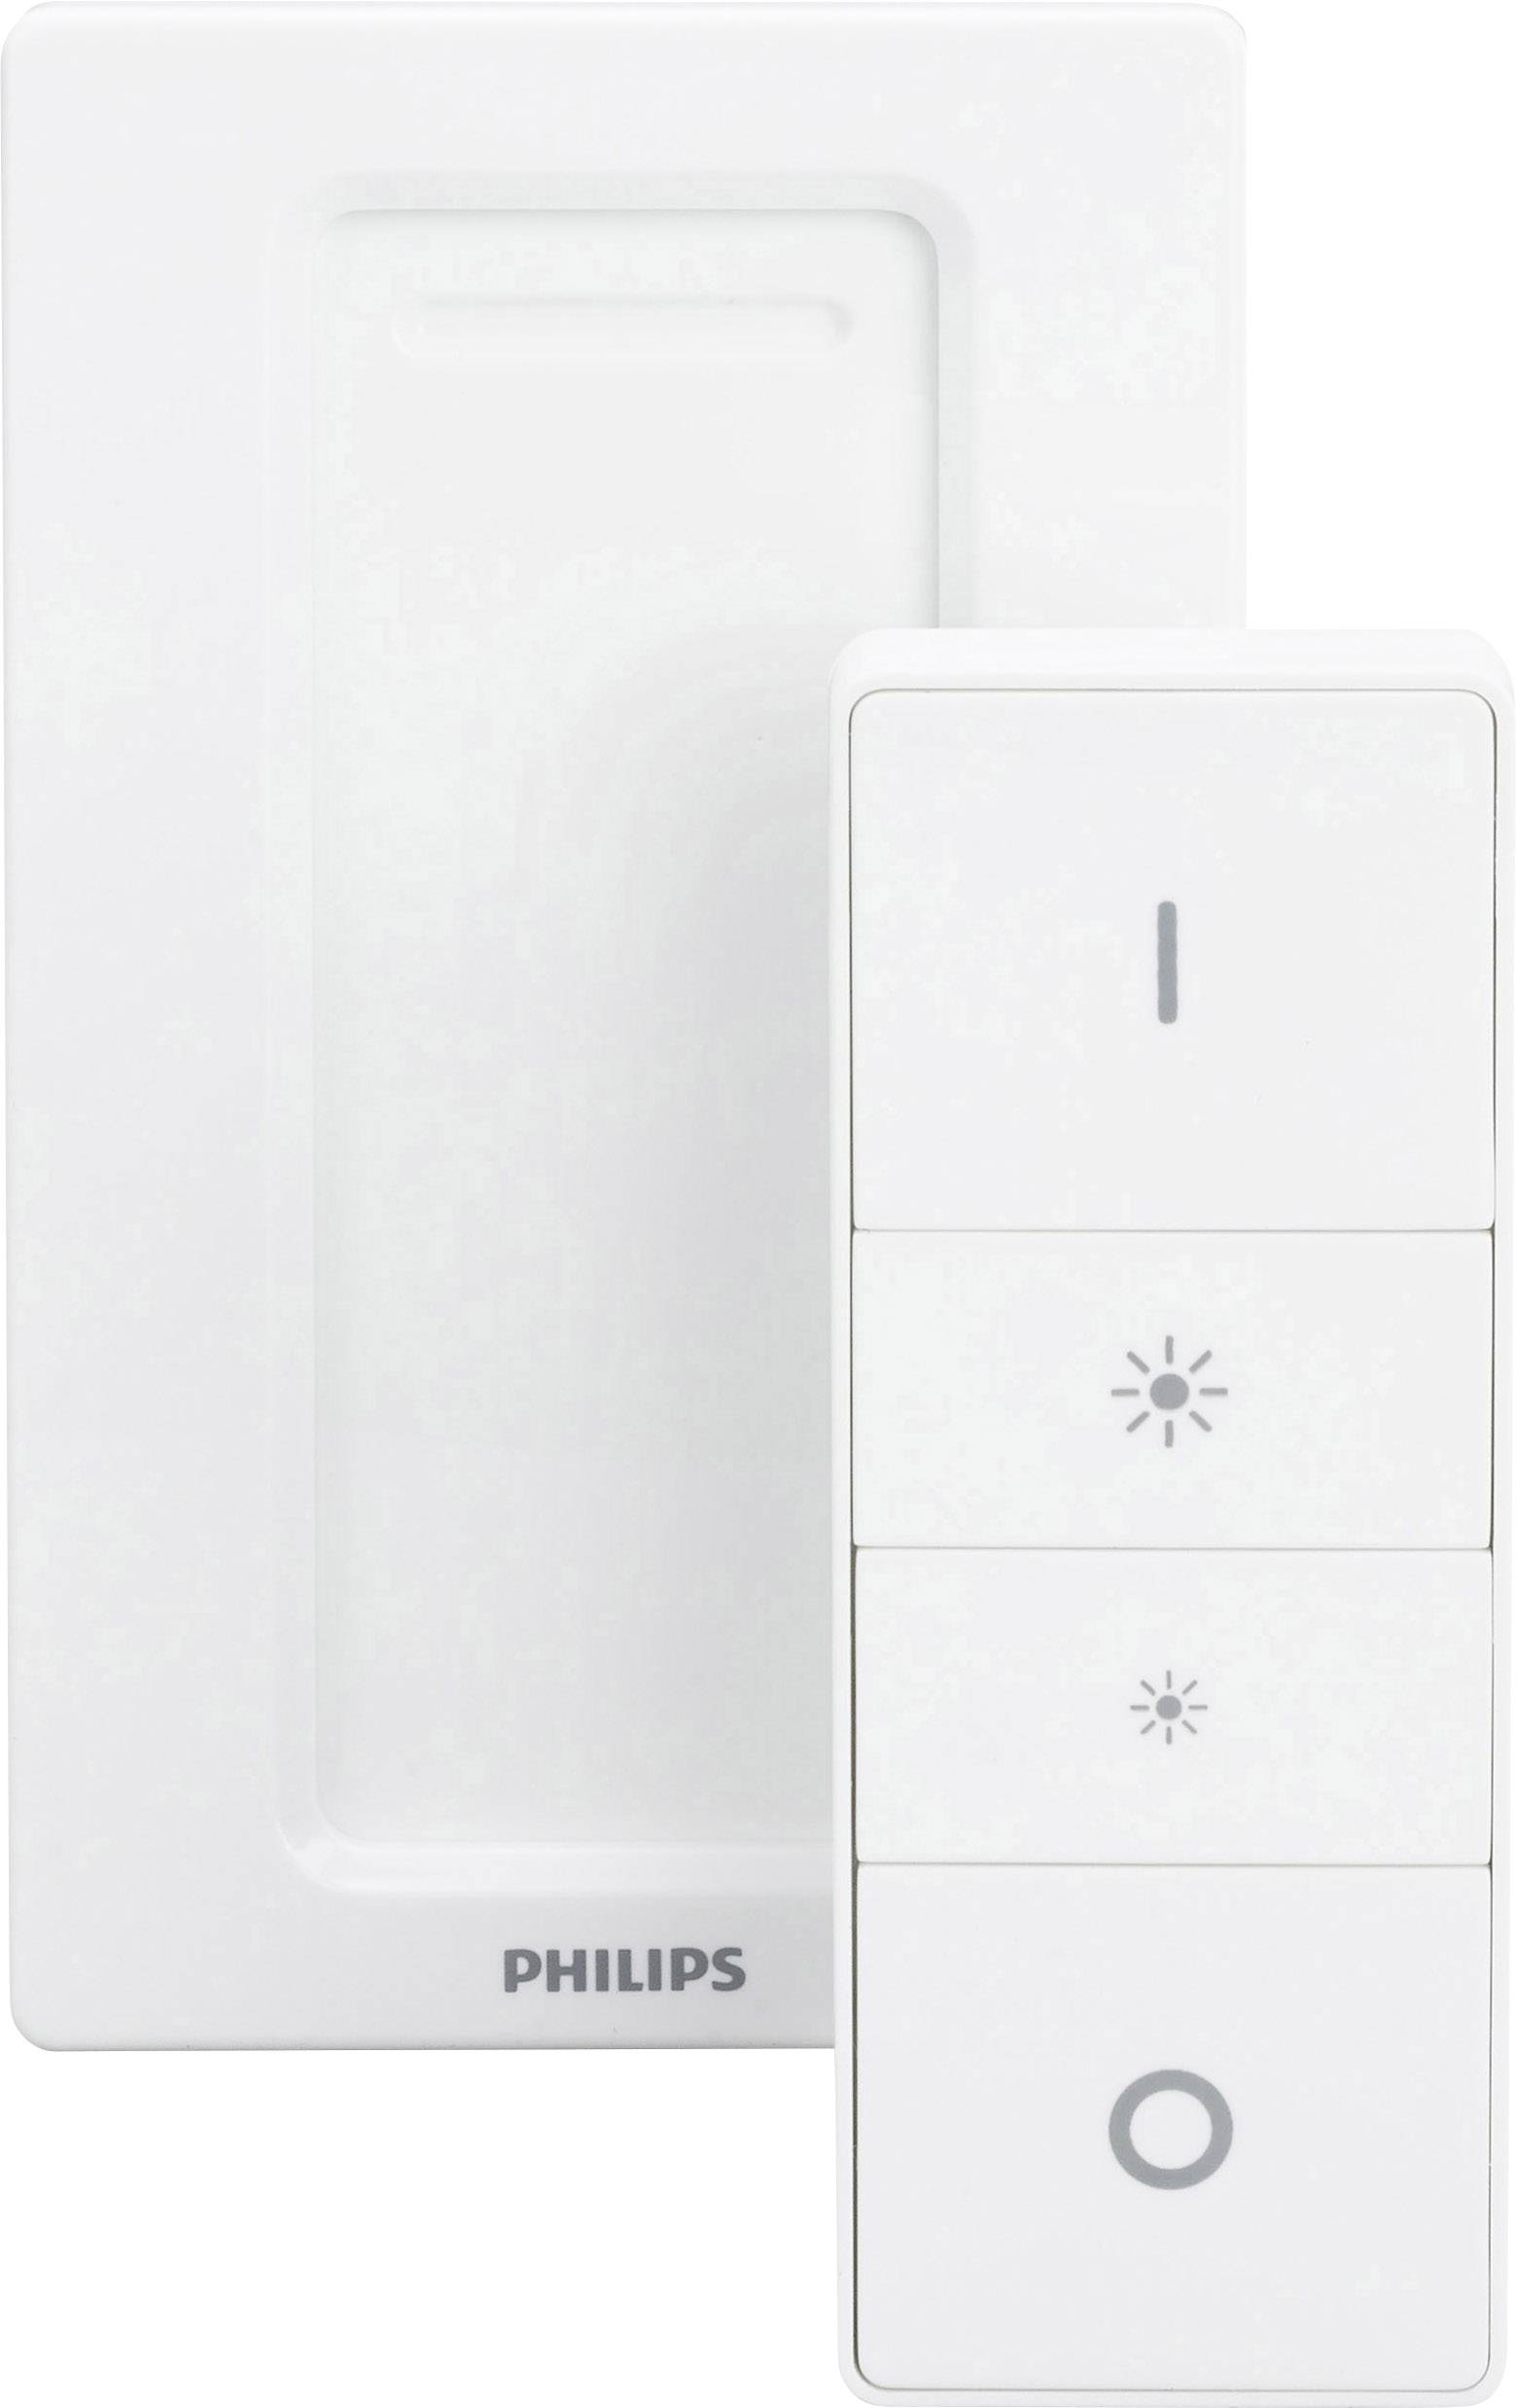 Dimmer Switch Philips Lighting Hue Funk Dimmer Dimmer Switch